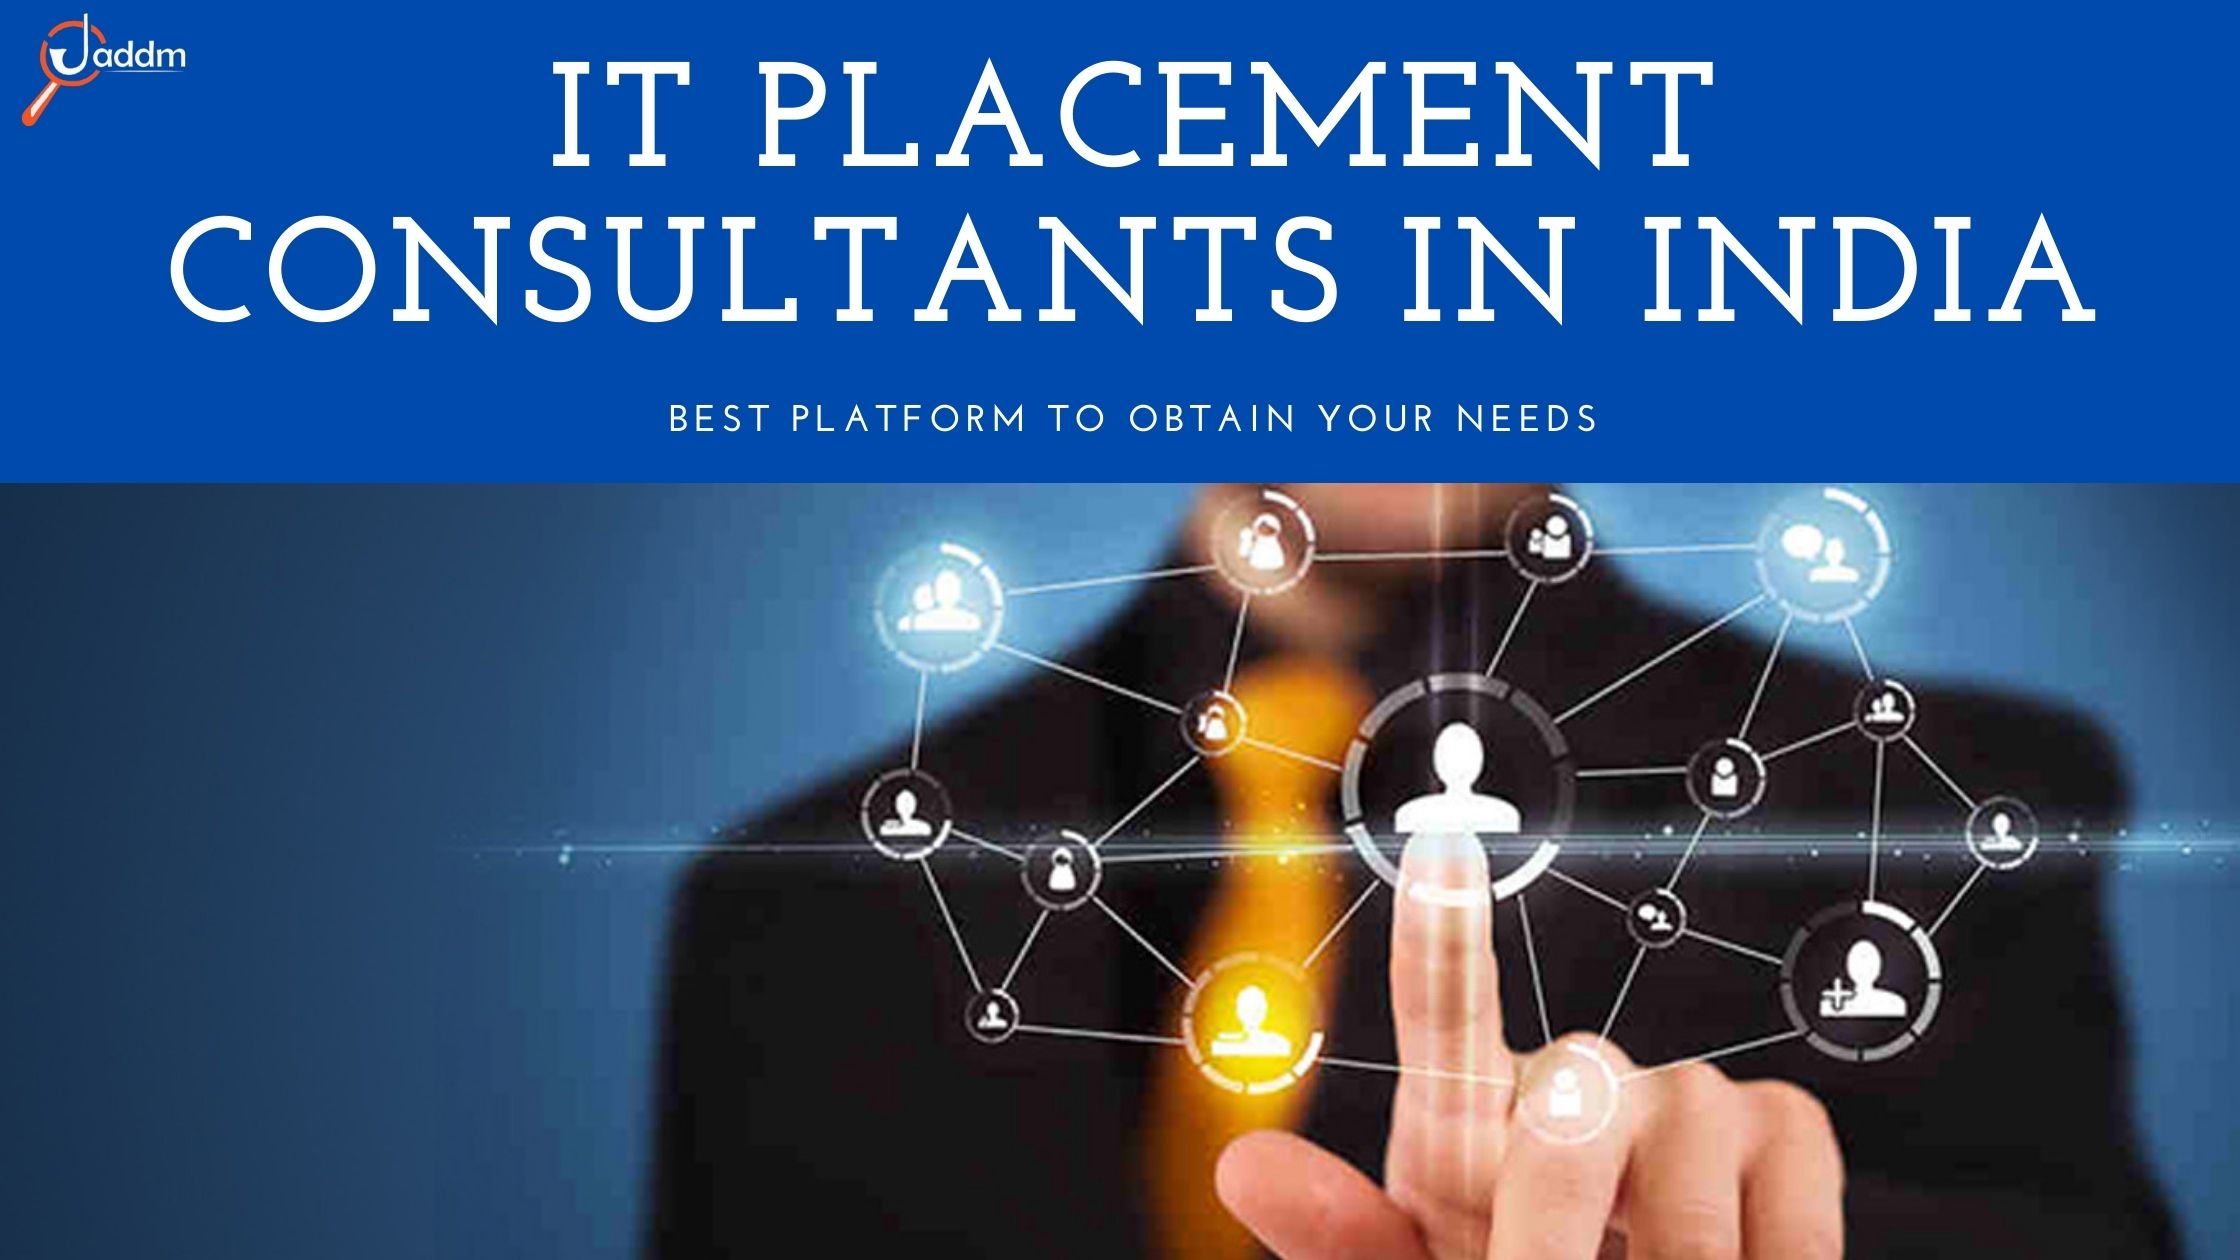 IT Placement consultants in India, More than 3k IT Jobs